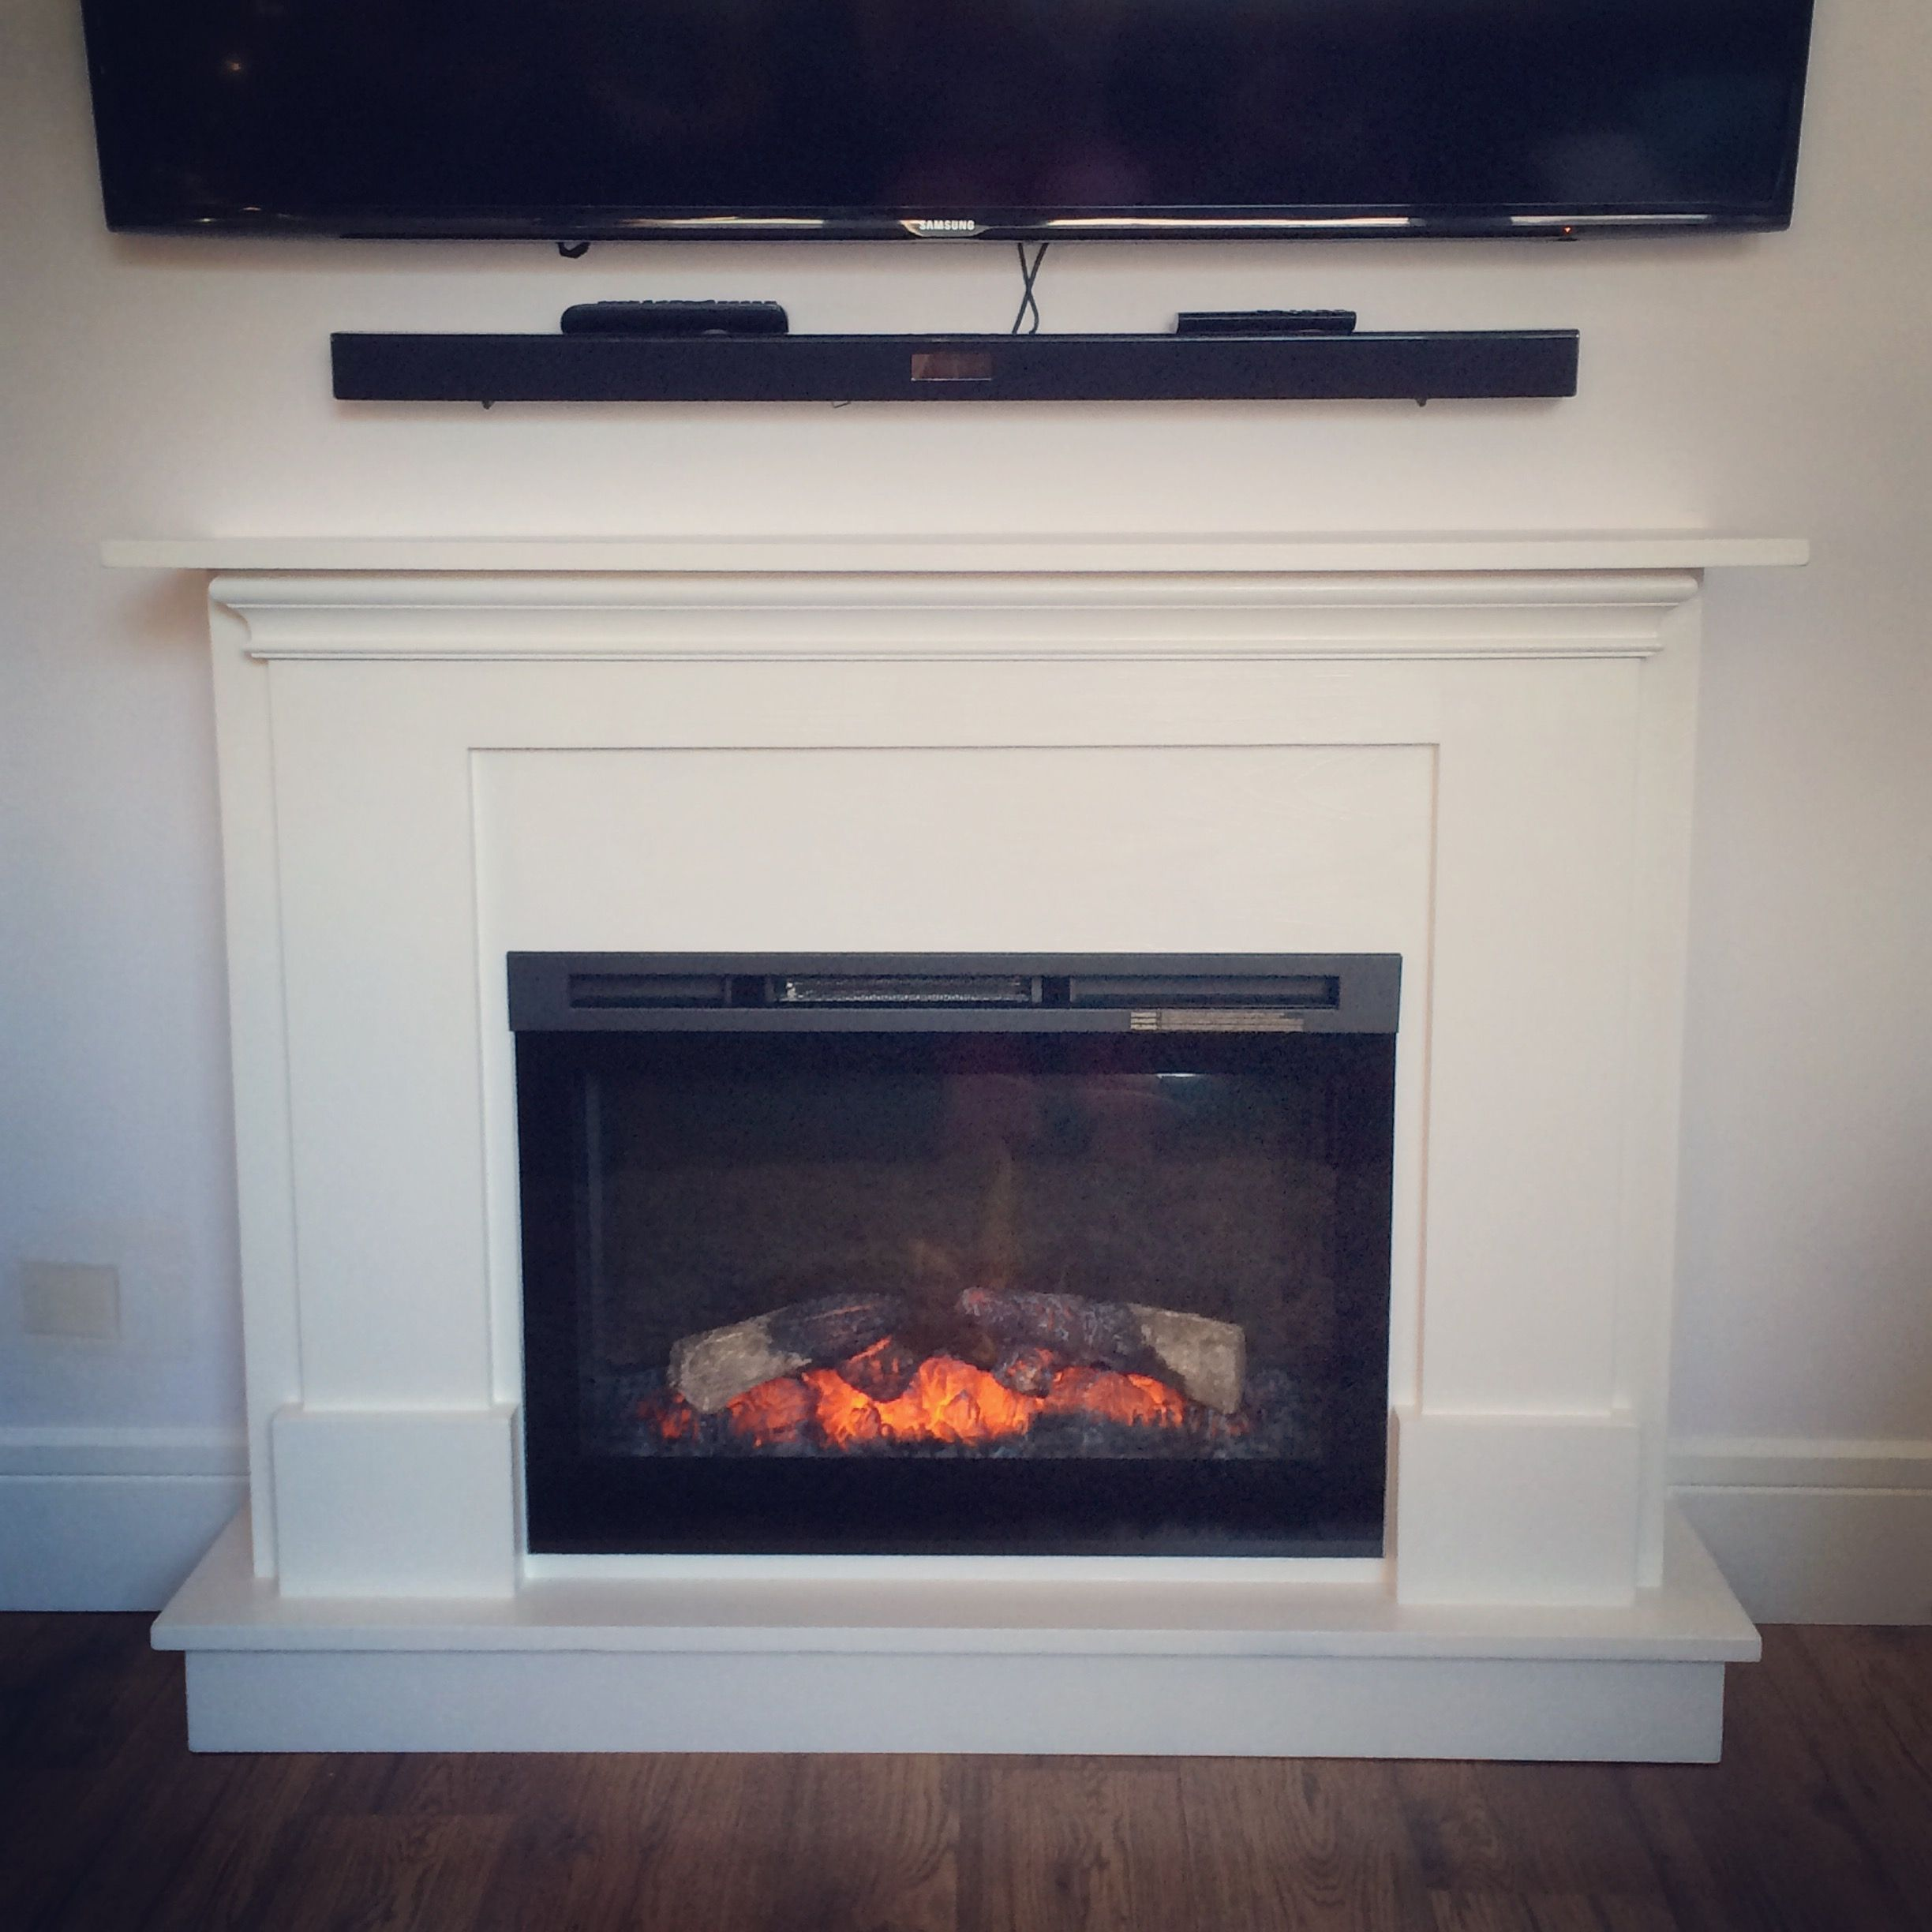 15 Diy Fireplace Surround for Electric Fireplace Pictures